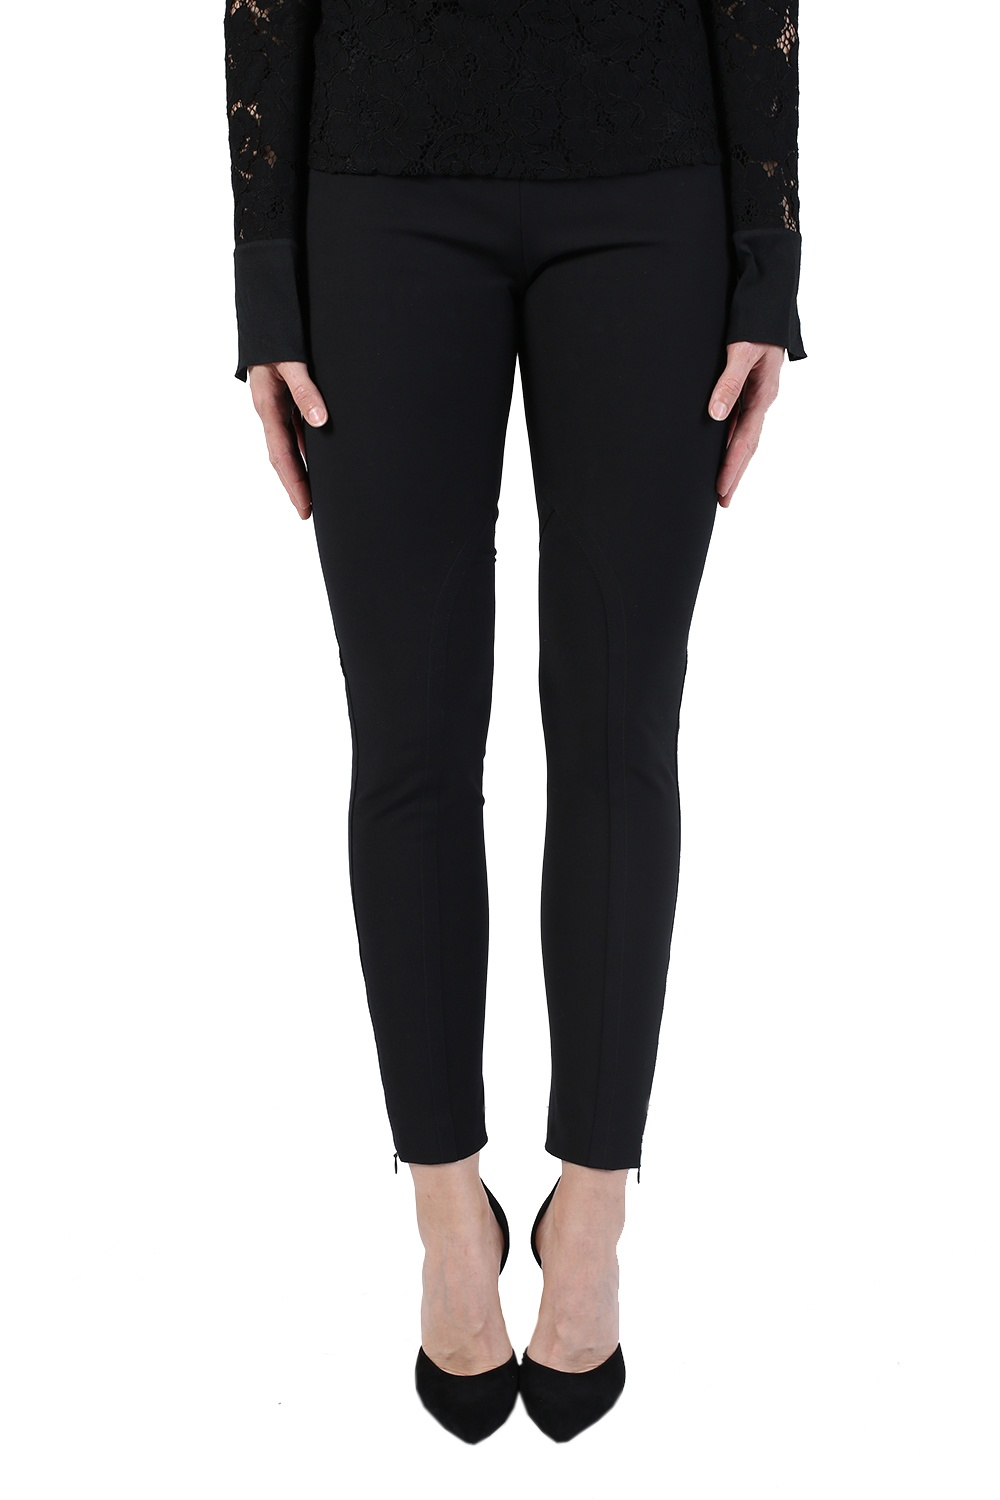 Stella McCartney Elastic waist trousers